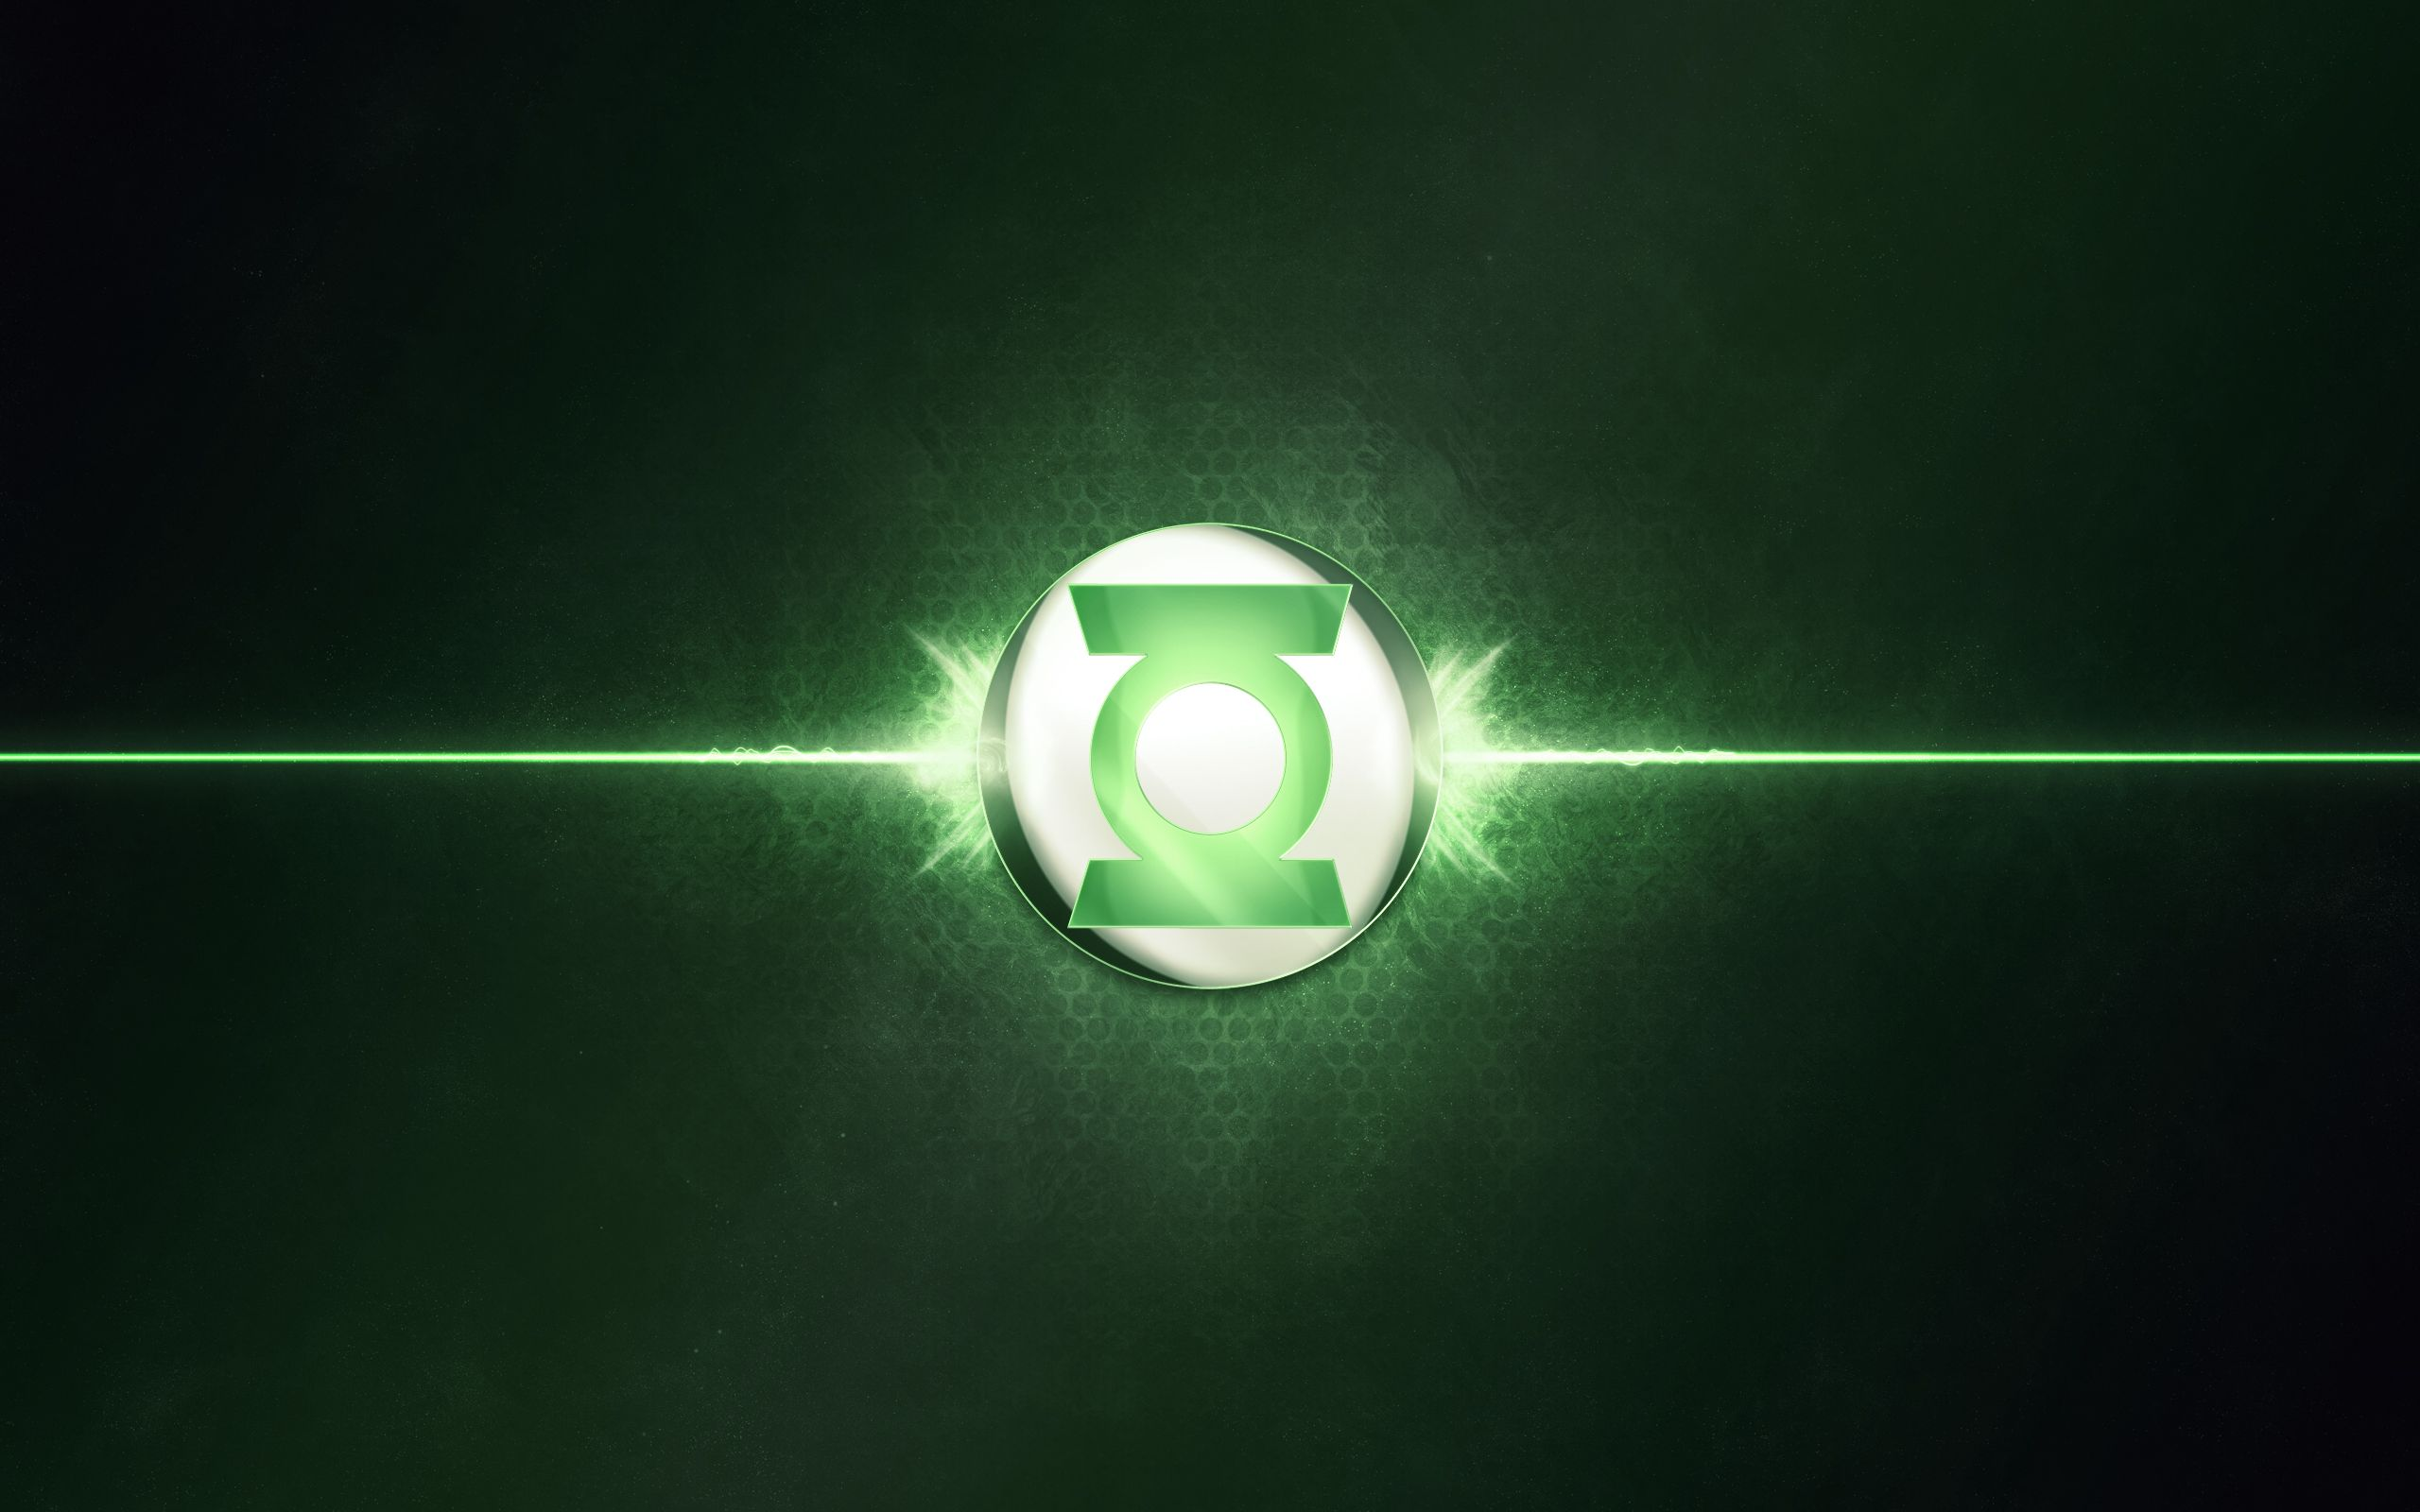 green lanterns | awesome wallpapers | pinterest | green lantern